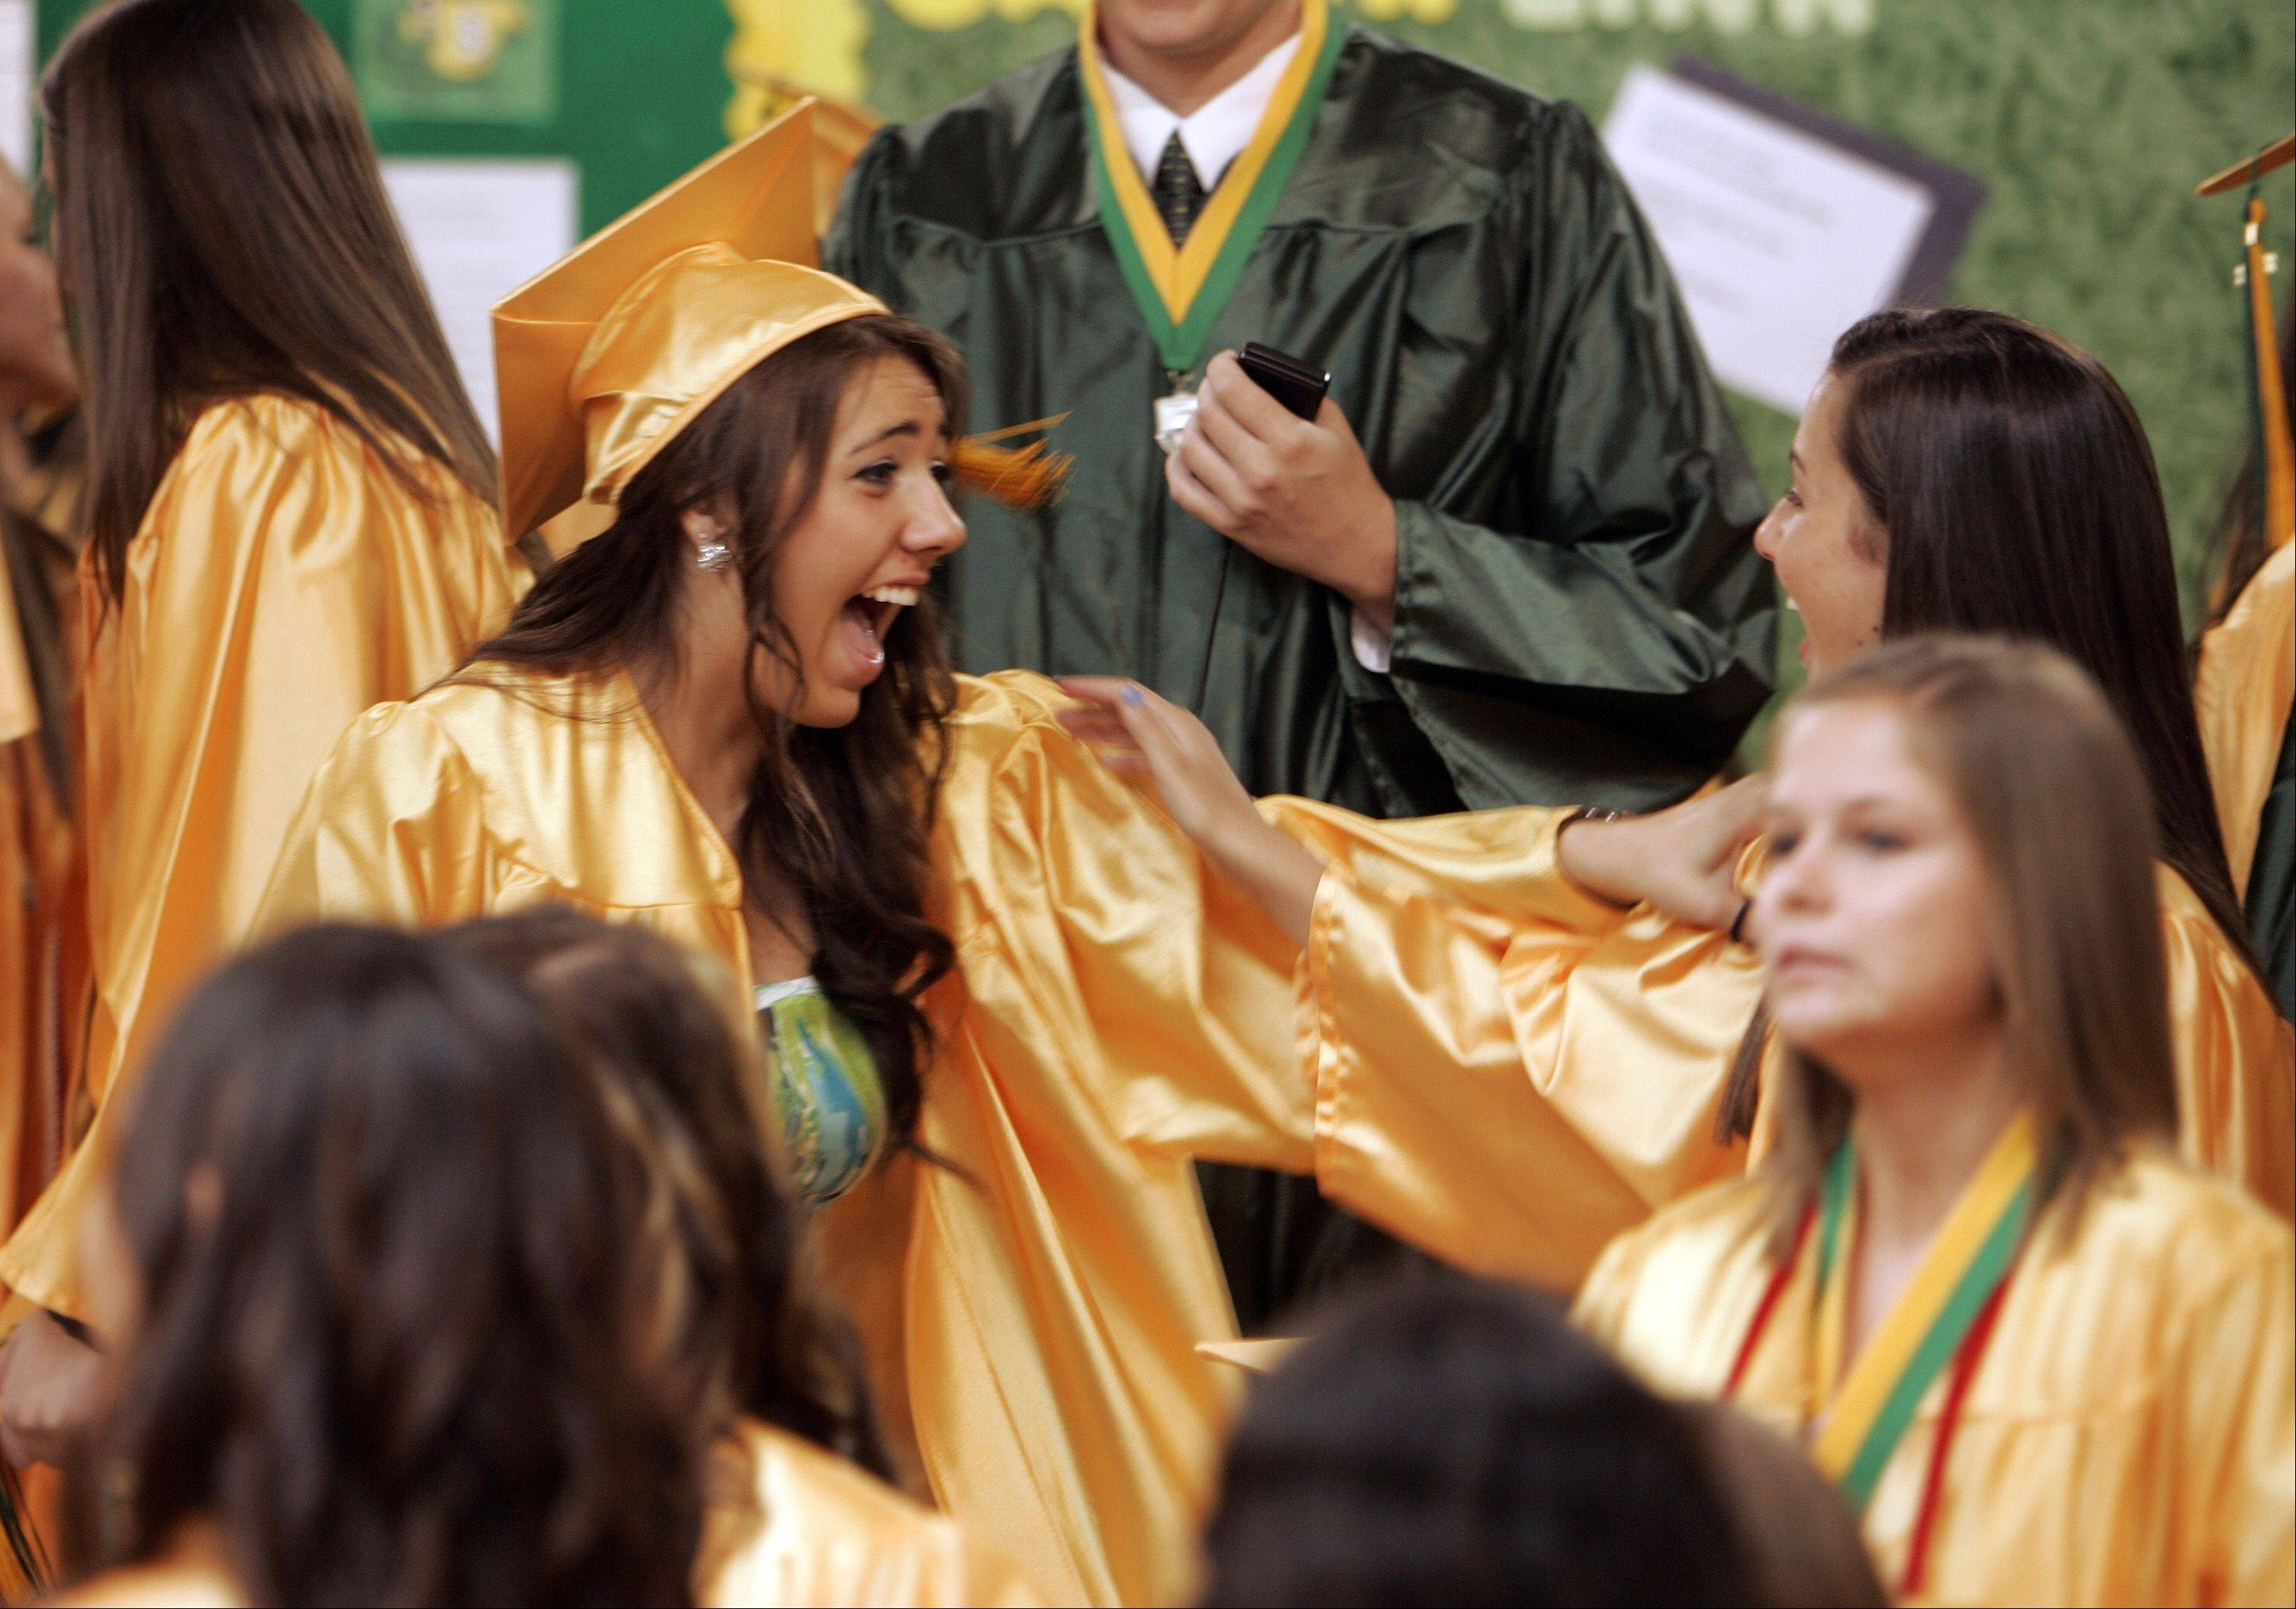 Images from the Crystal Lake South High School graduation Saturday, May 26, 2012.